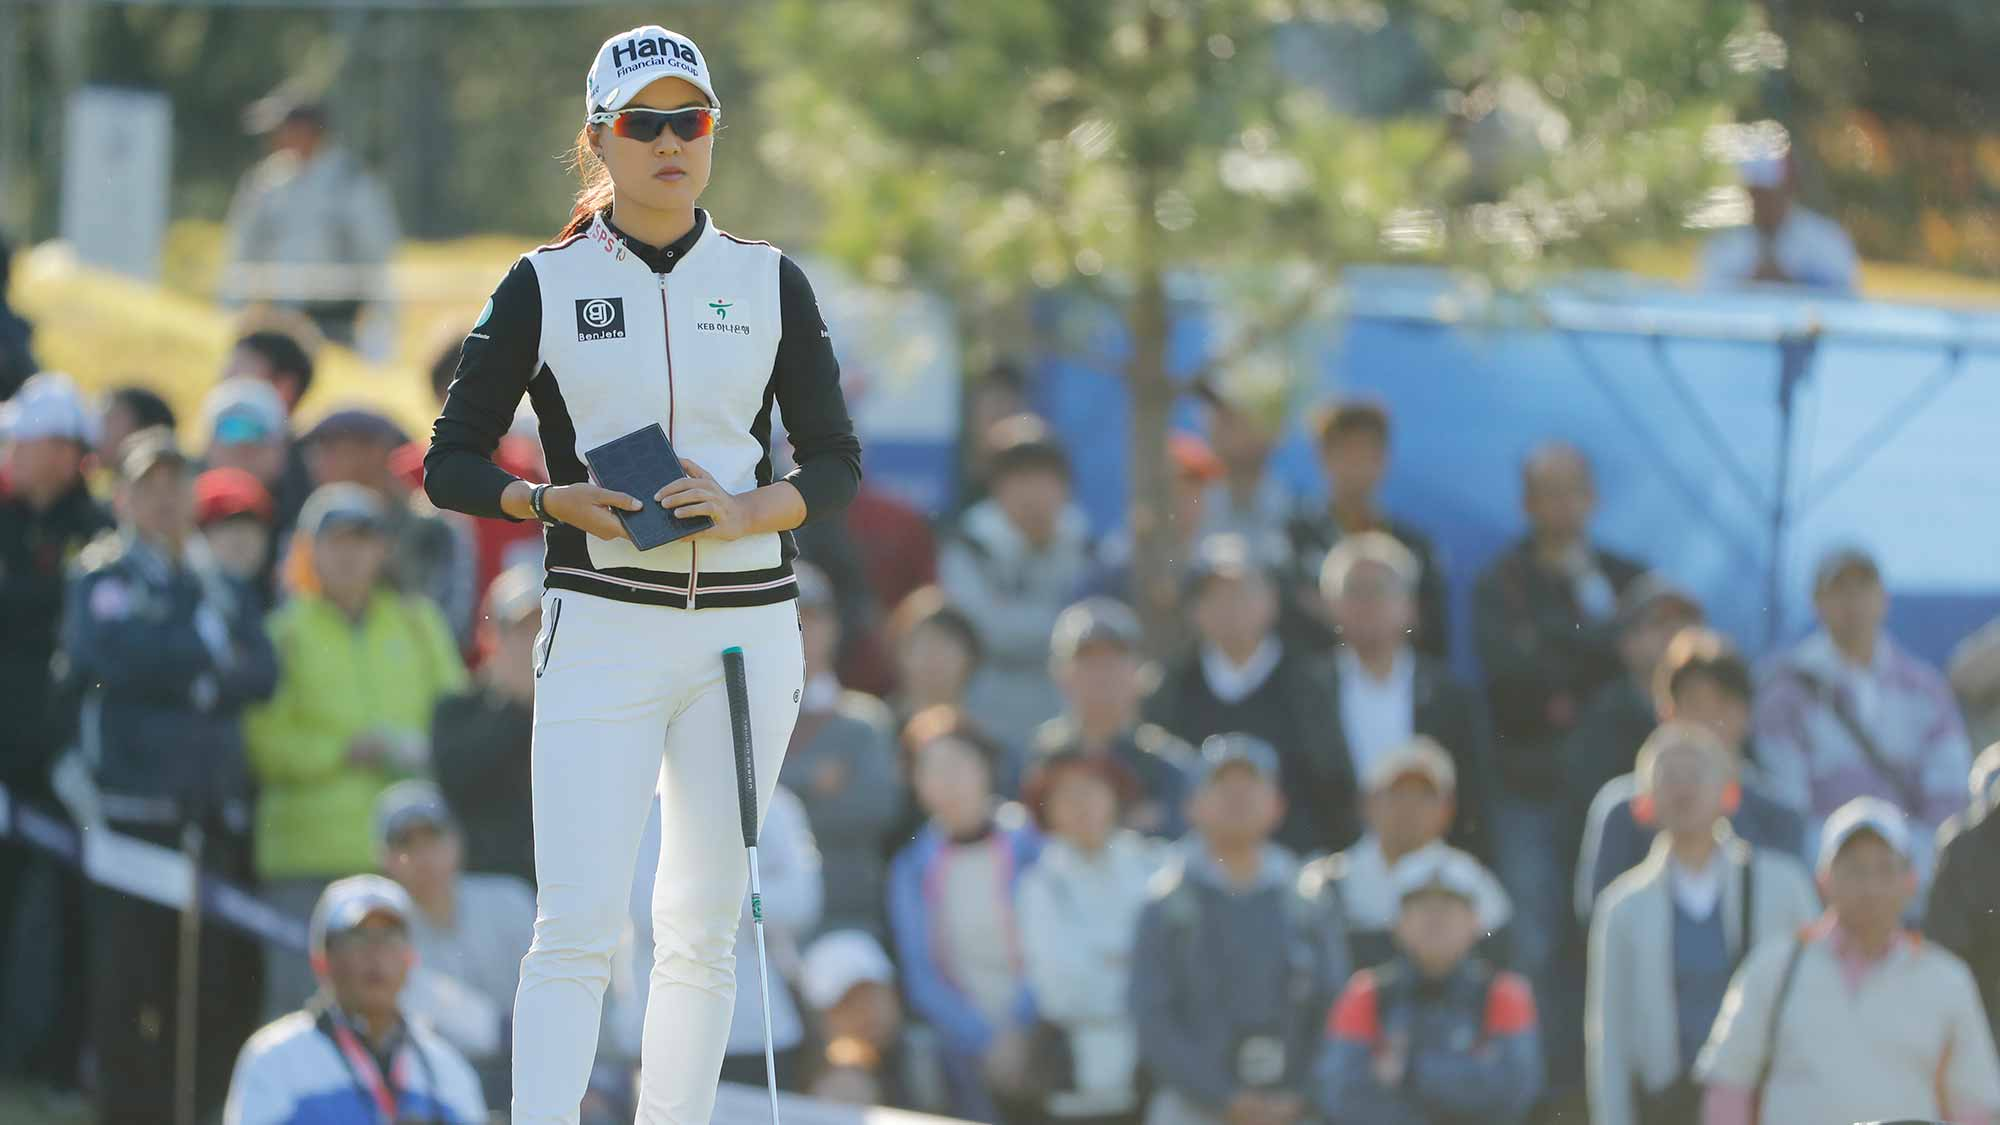 Minjee Lee of Australia looks on during the second round of the TOTO Japan Classic at Seta Golf Course on November 03, 2018 in Otsu, Shiga, Japan